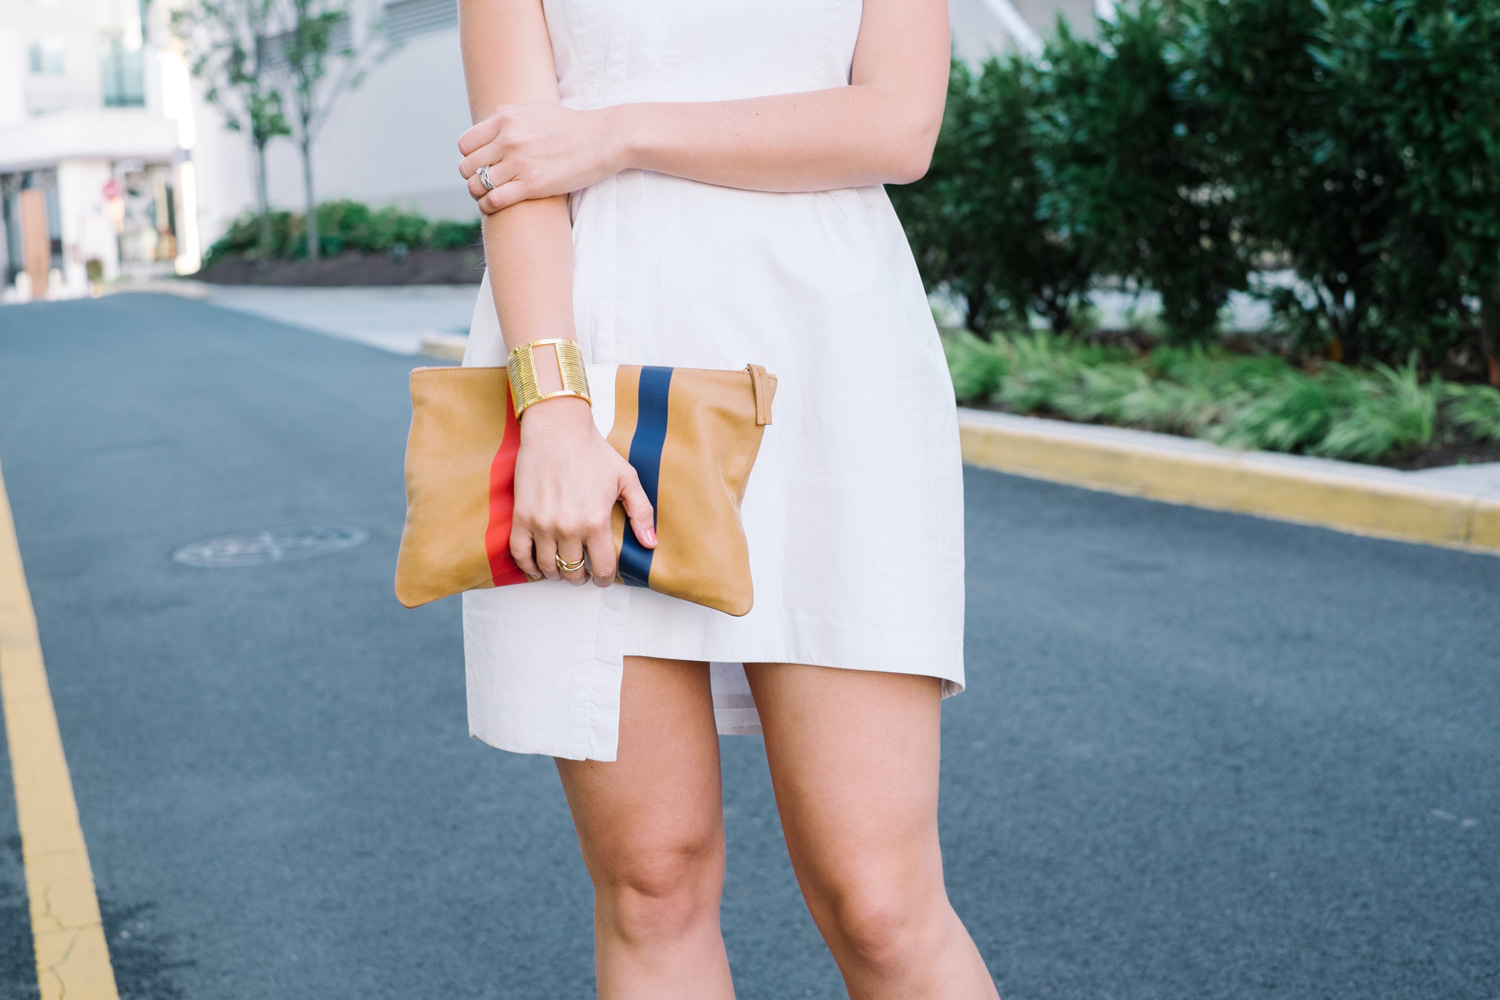 This Clare V. clutch  is 25% off with code: INTHEFAM